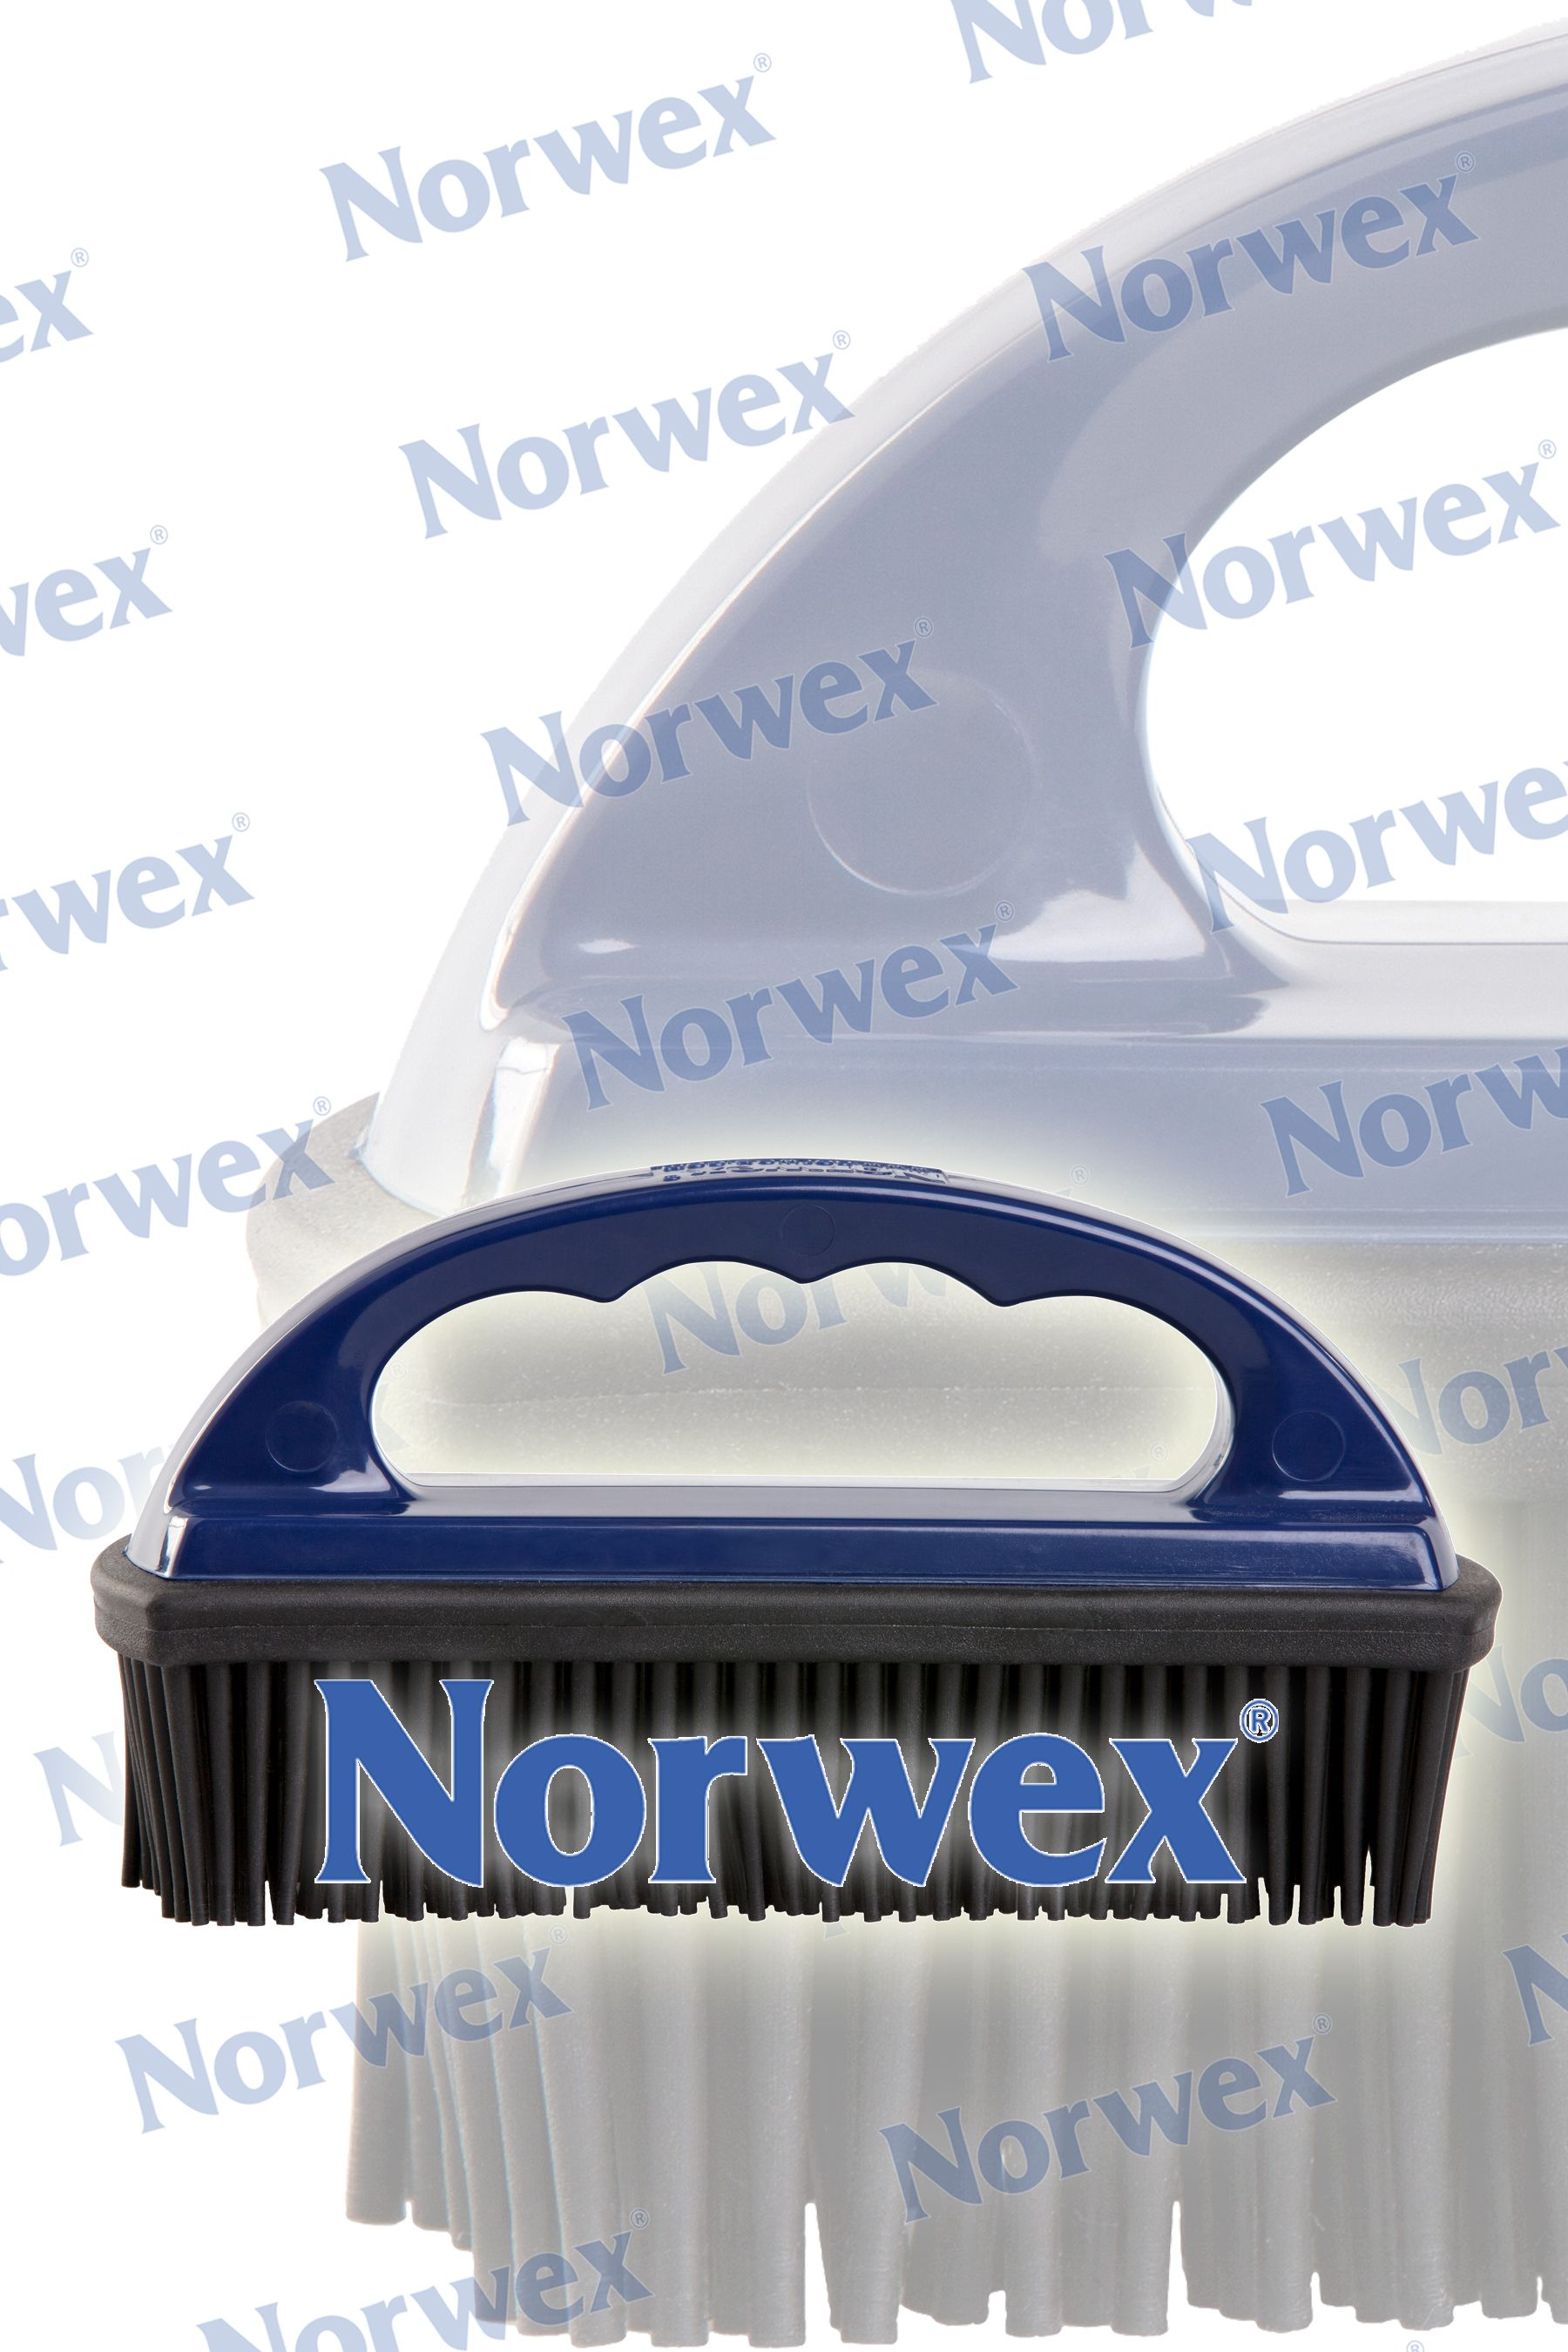 Norwex Rubber Brush Www Norwex Com Use For Removing